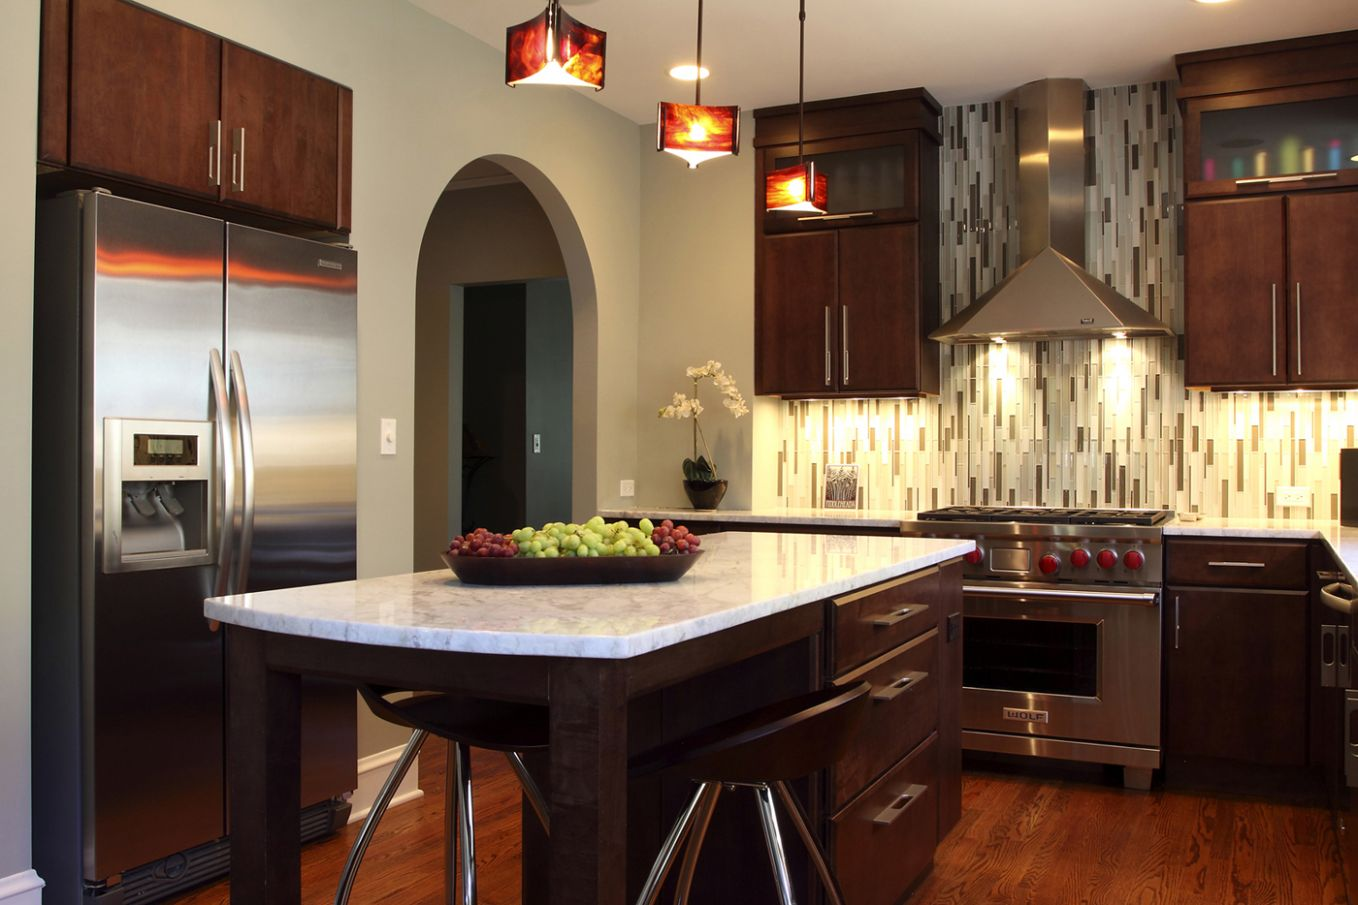 Design Galley Kitchen Ideas Awesome House Best Small Ft Simple ..